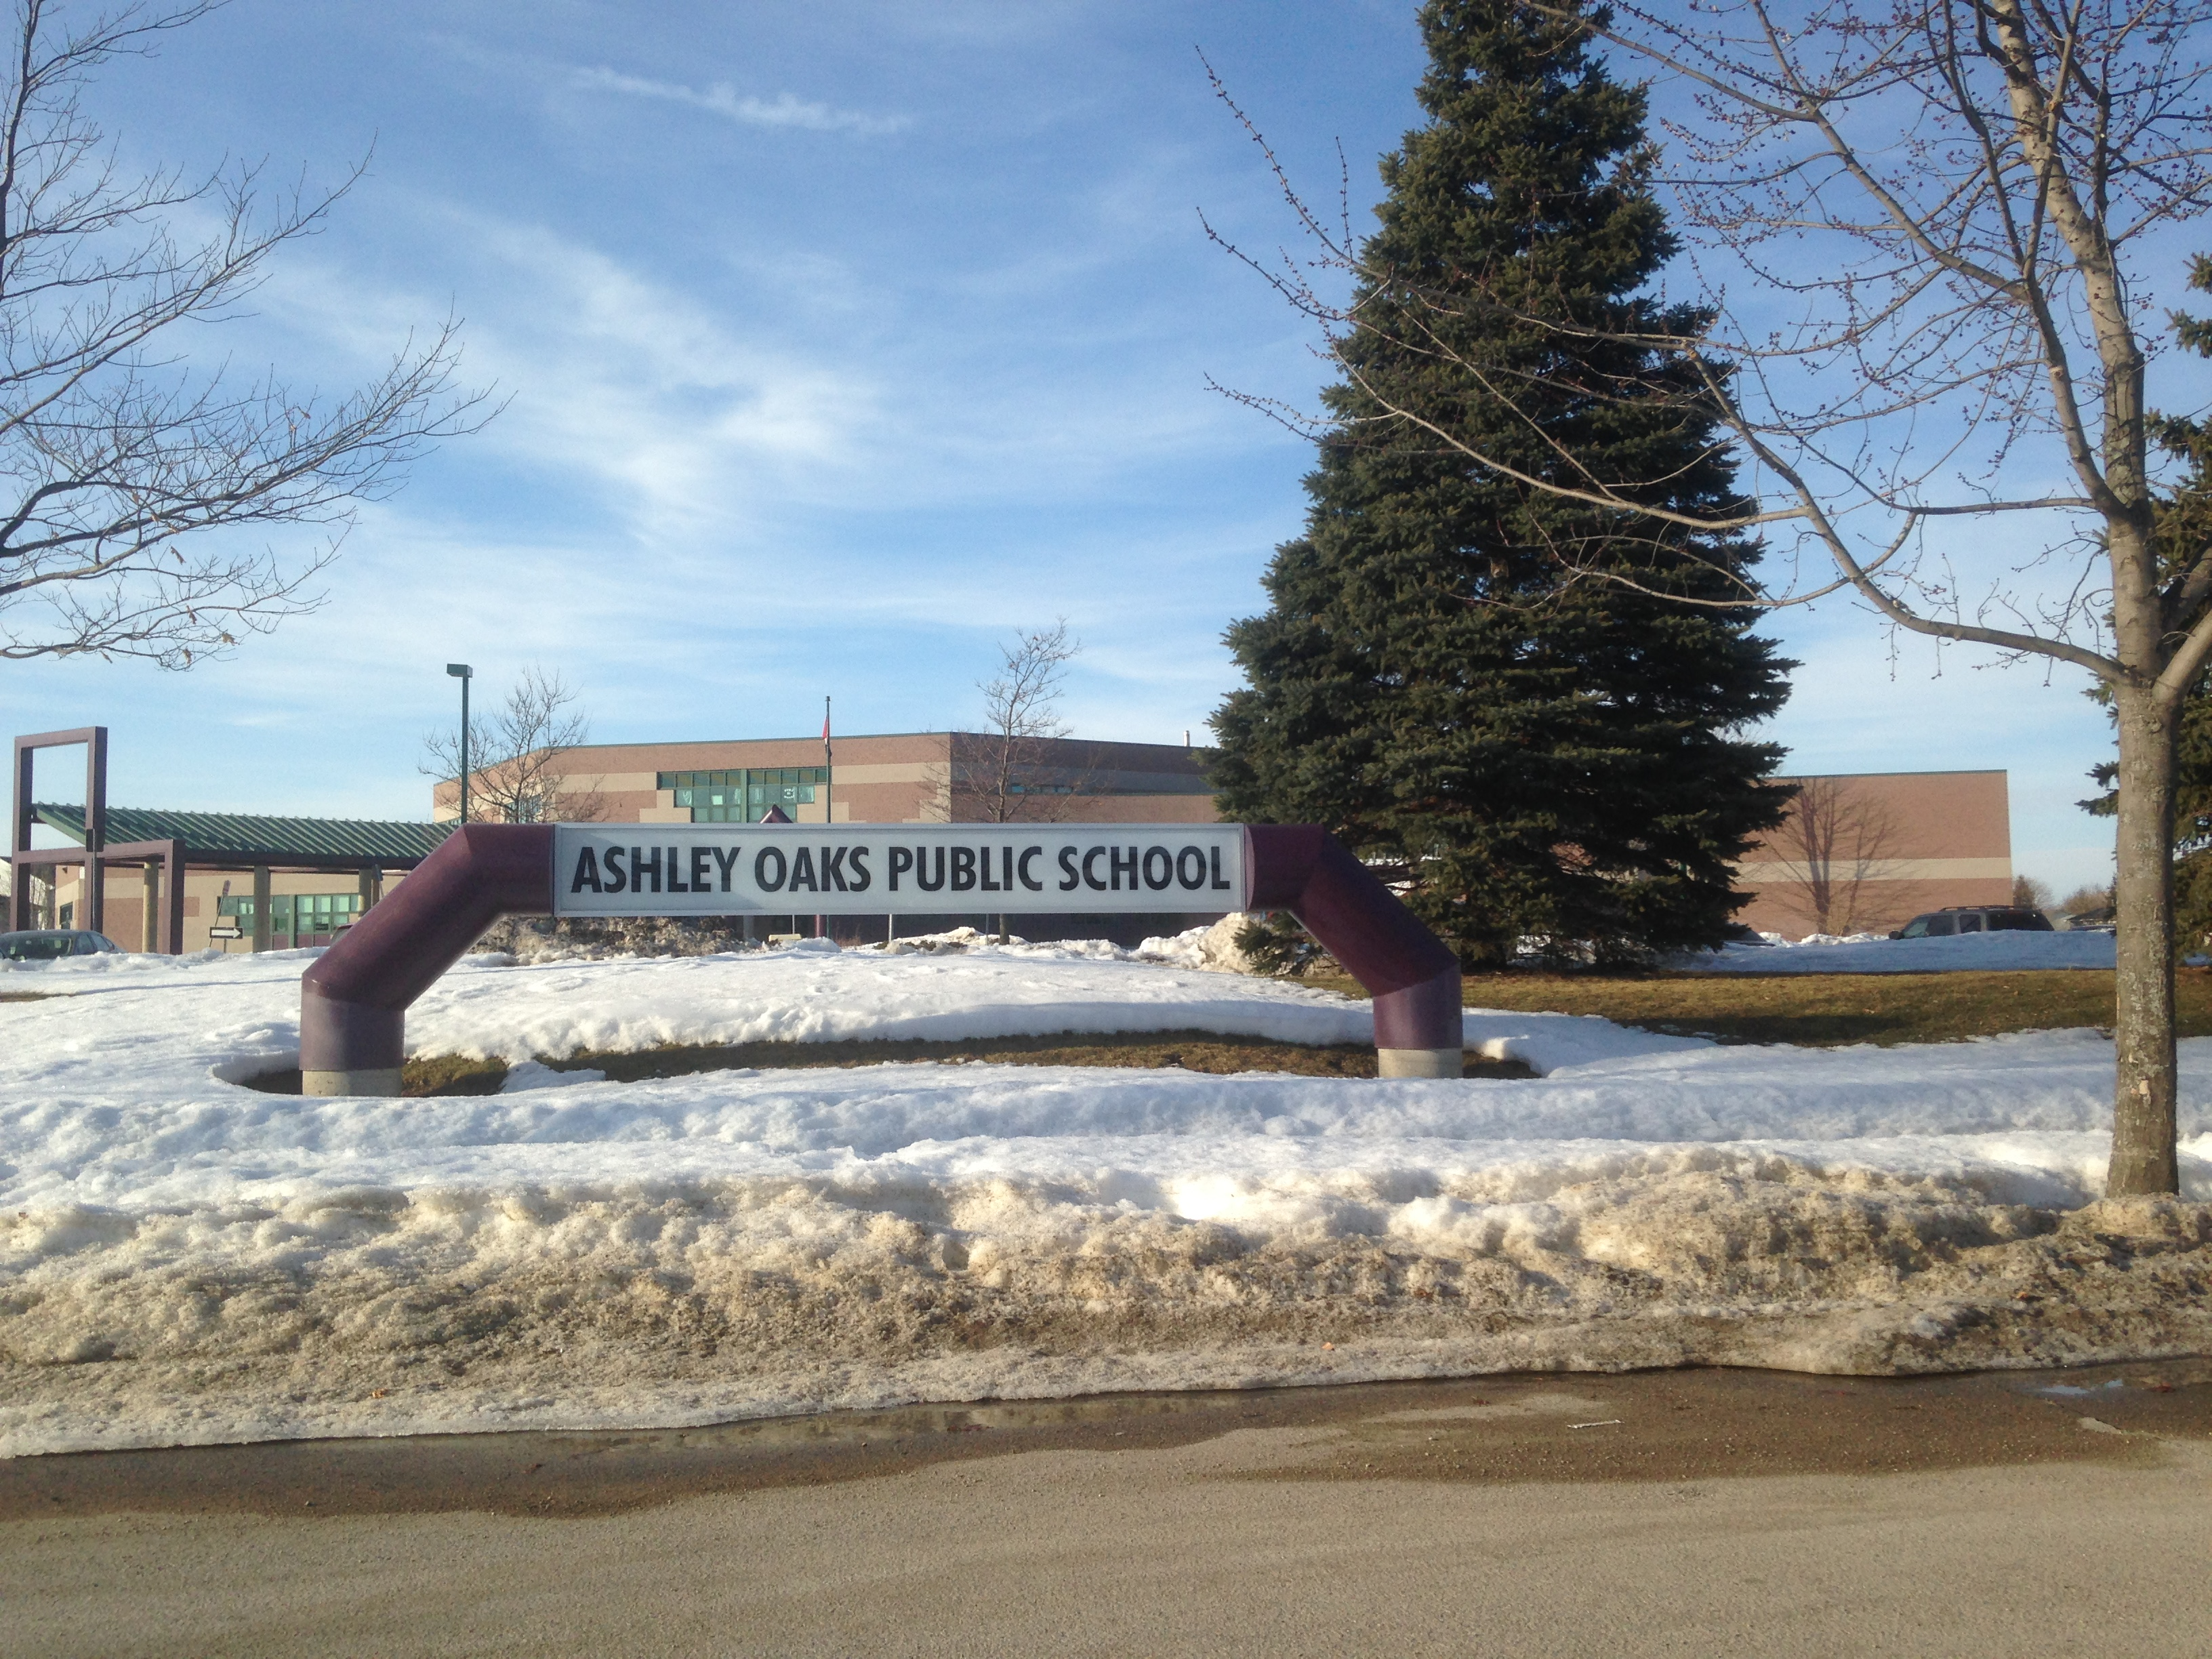 Ashley Oaks Public School